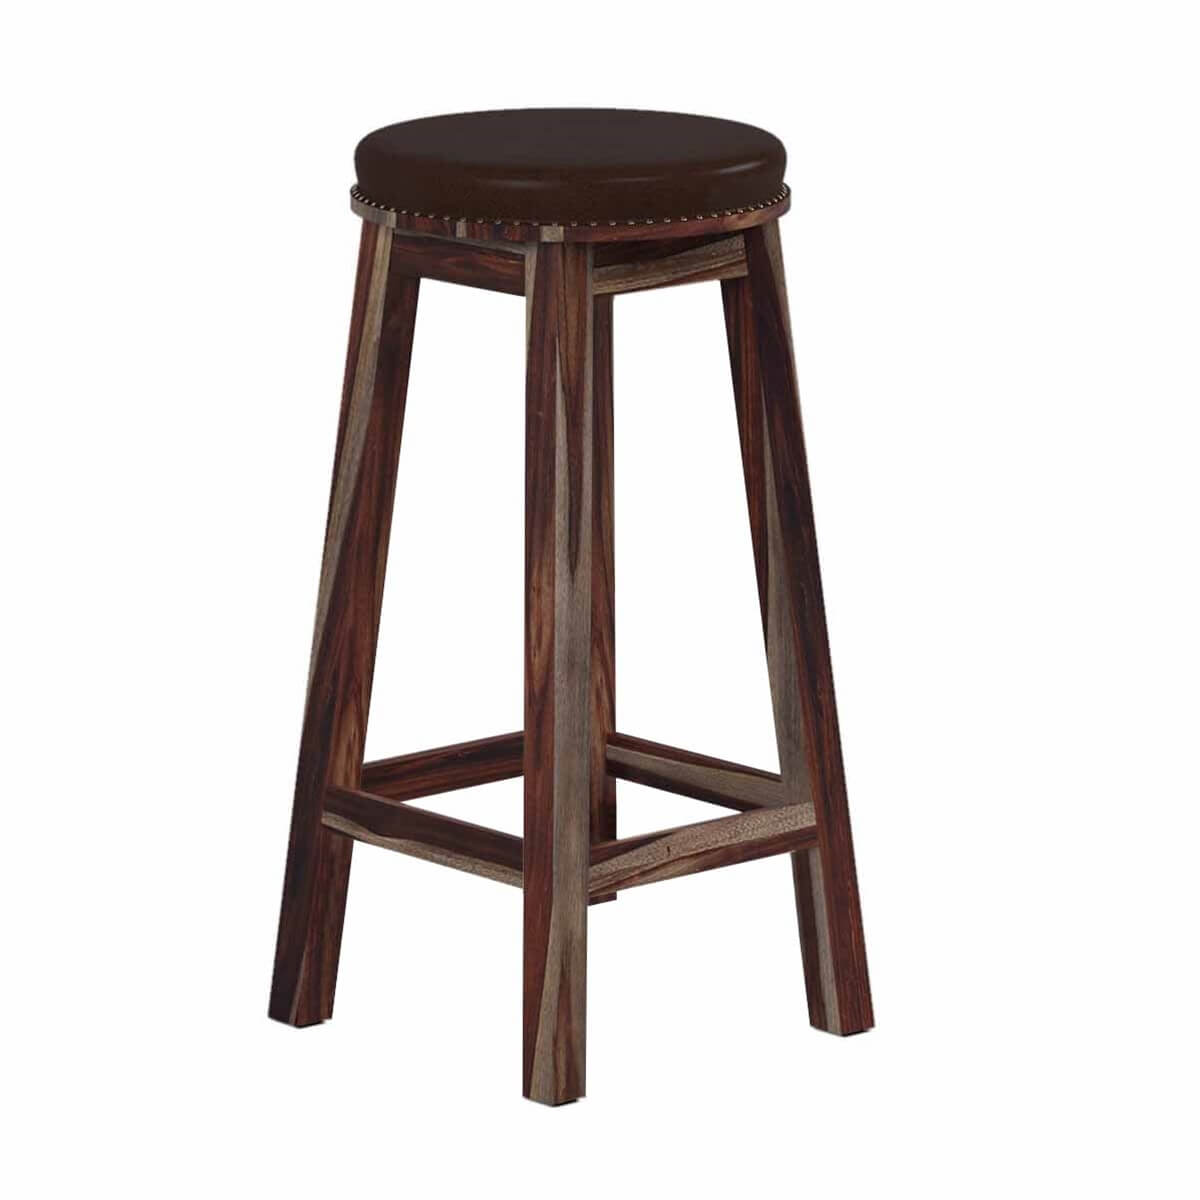 Classic Rustic Solid Wood & Leather Upholstered Round Bar